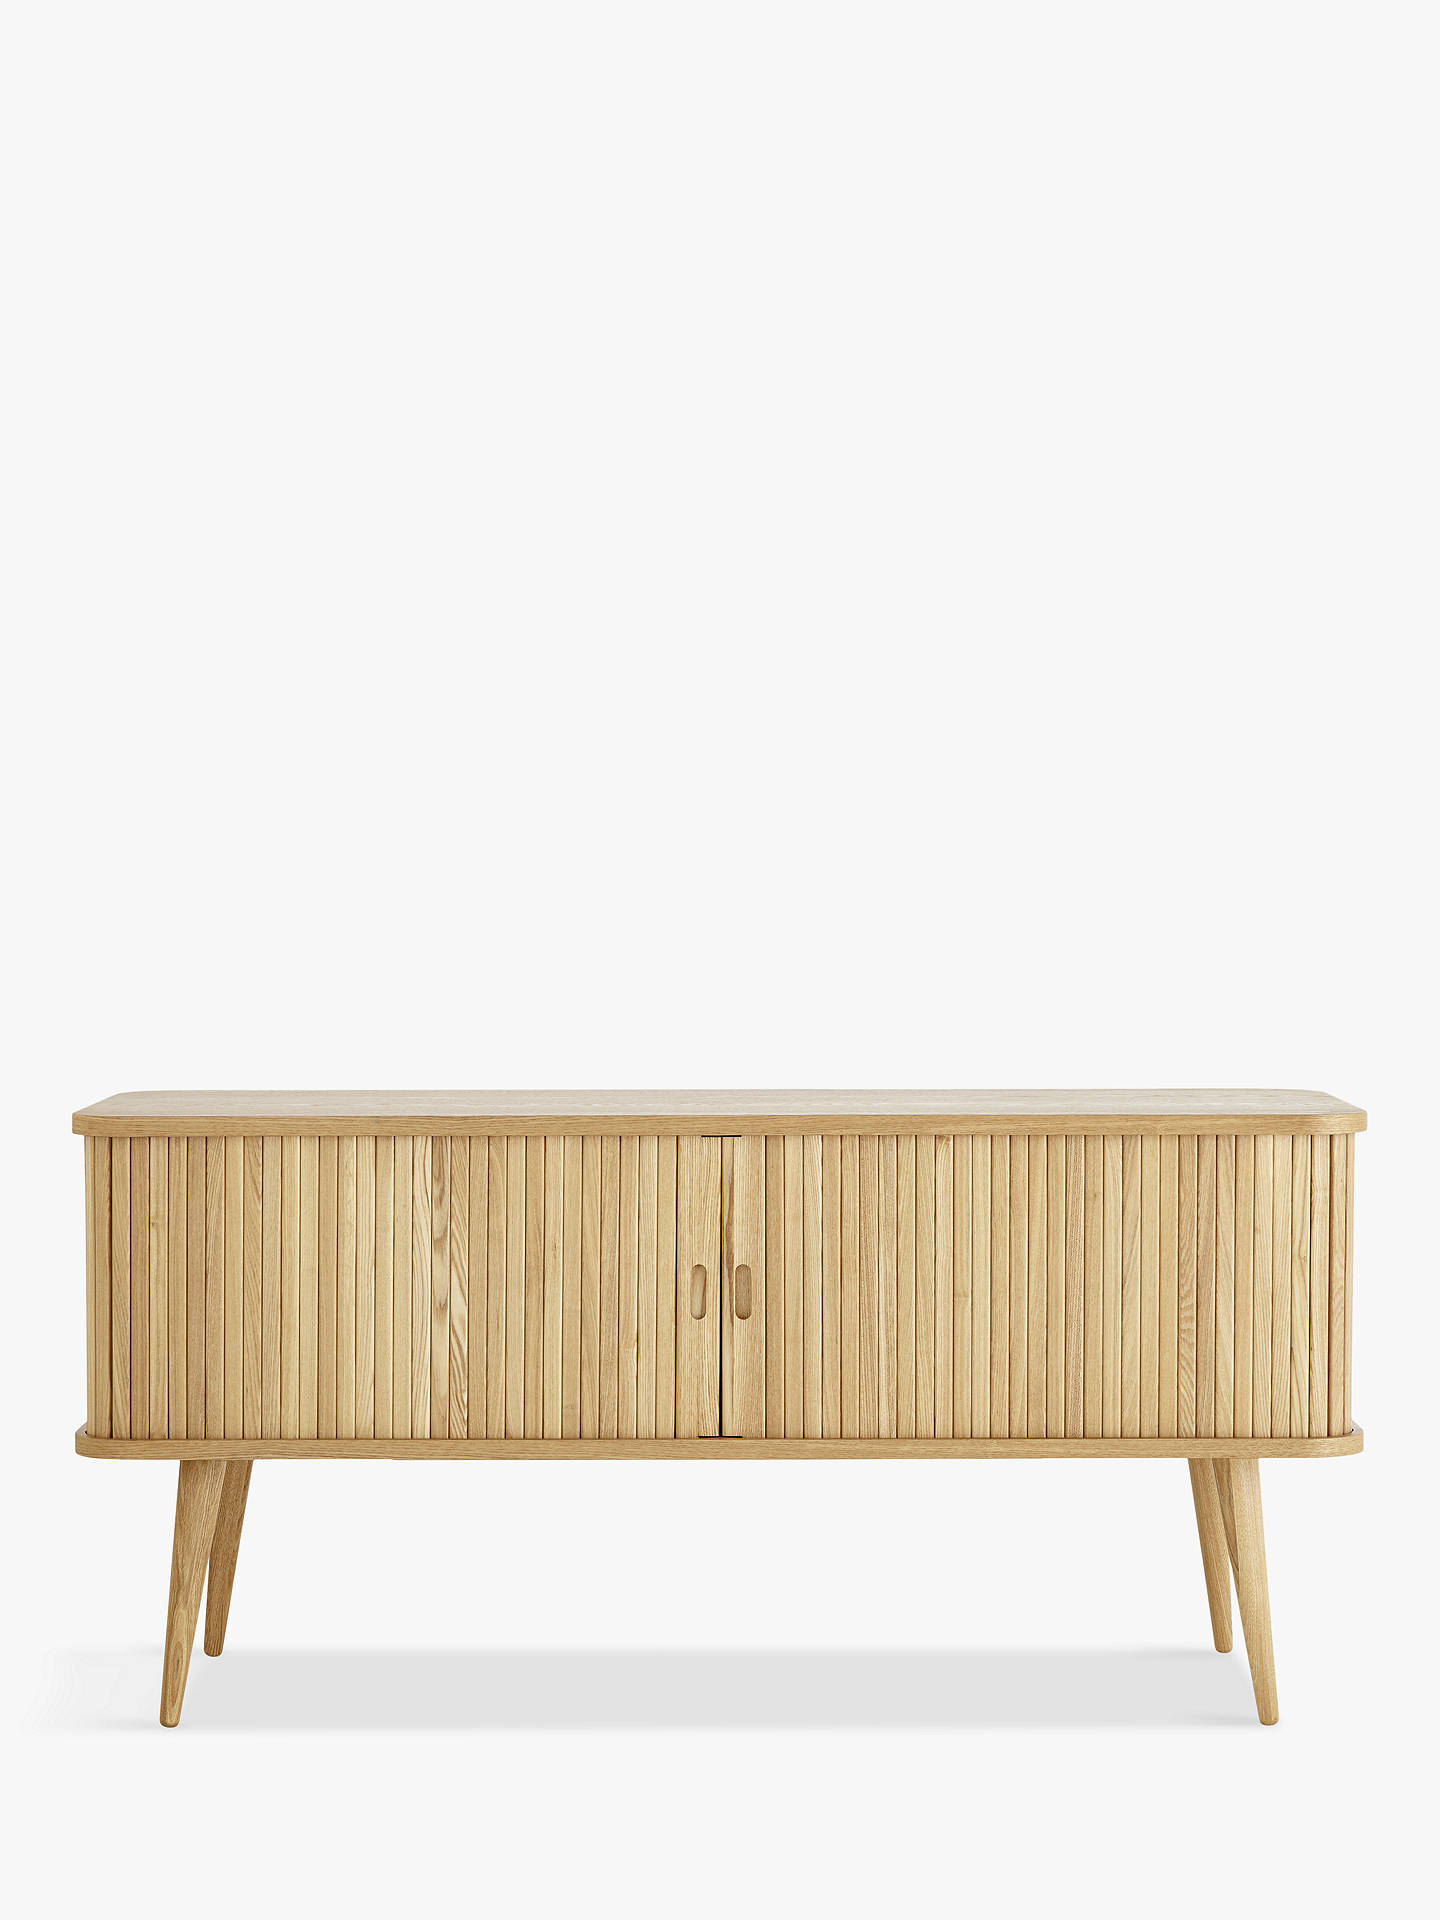 "BuyJohn Lewis & Partners Grayson TV Stand for TVs up to 42"", Natural Online at johnlewis.com"